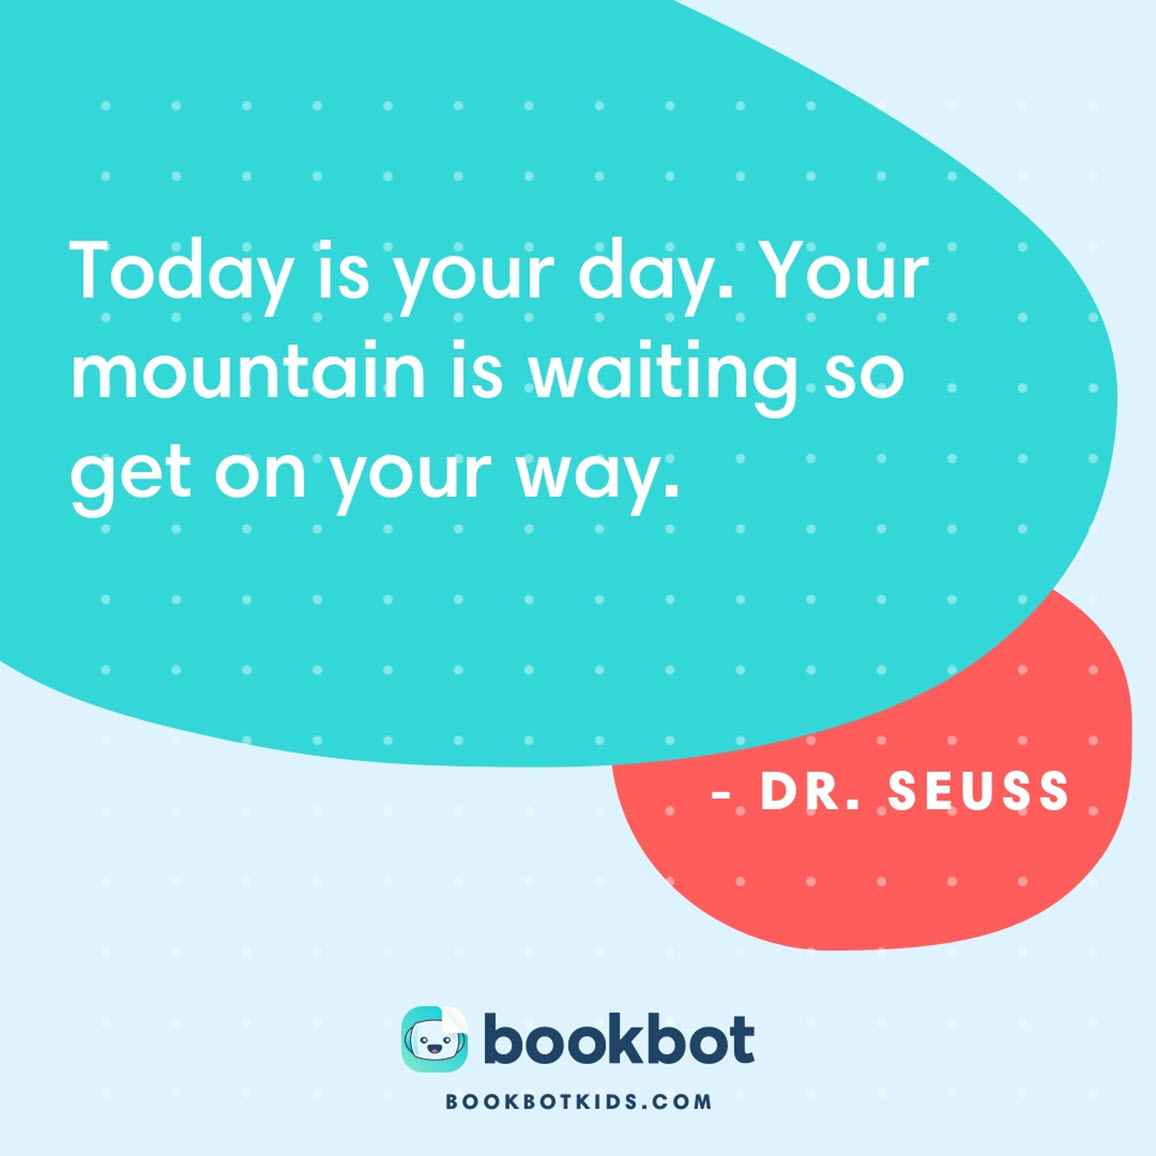 Today is your day. Your mountain is waiting so get on your way. – Dr. Seuss